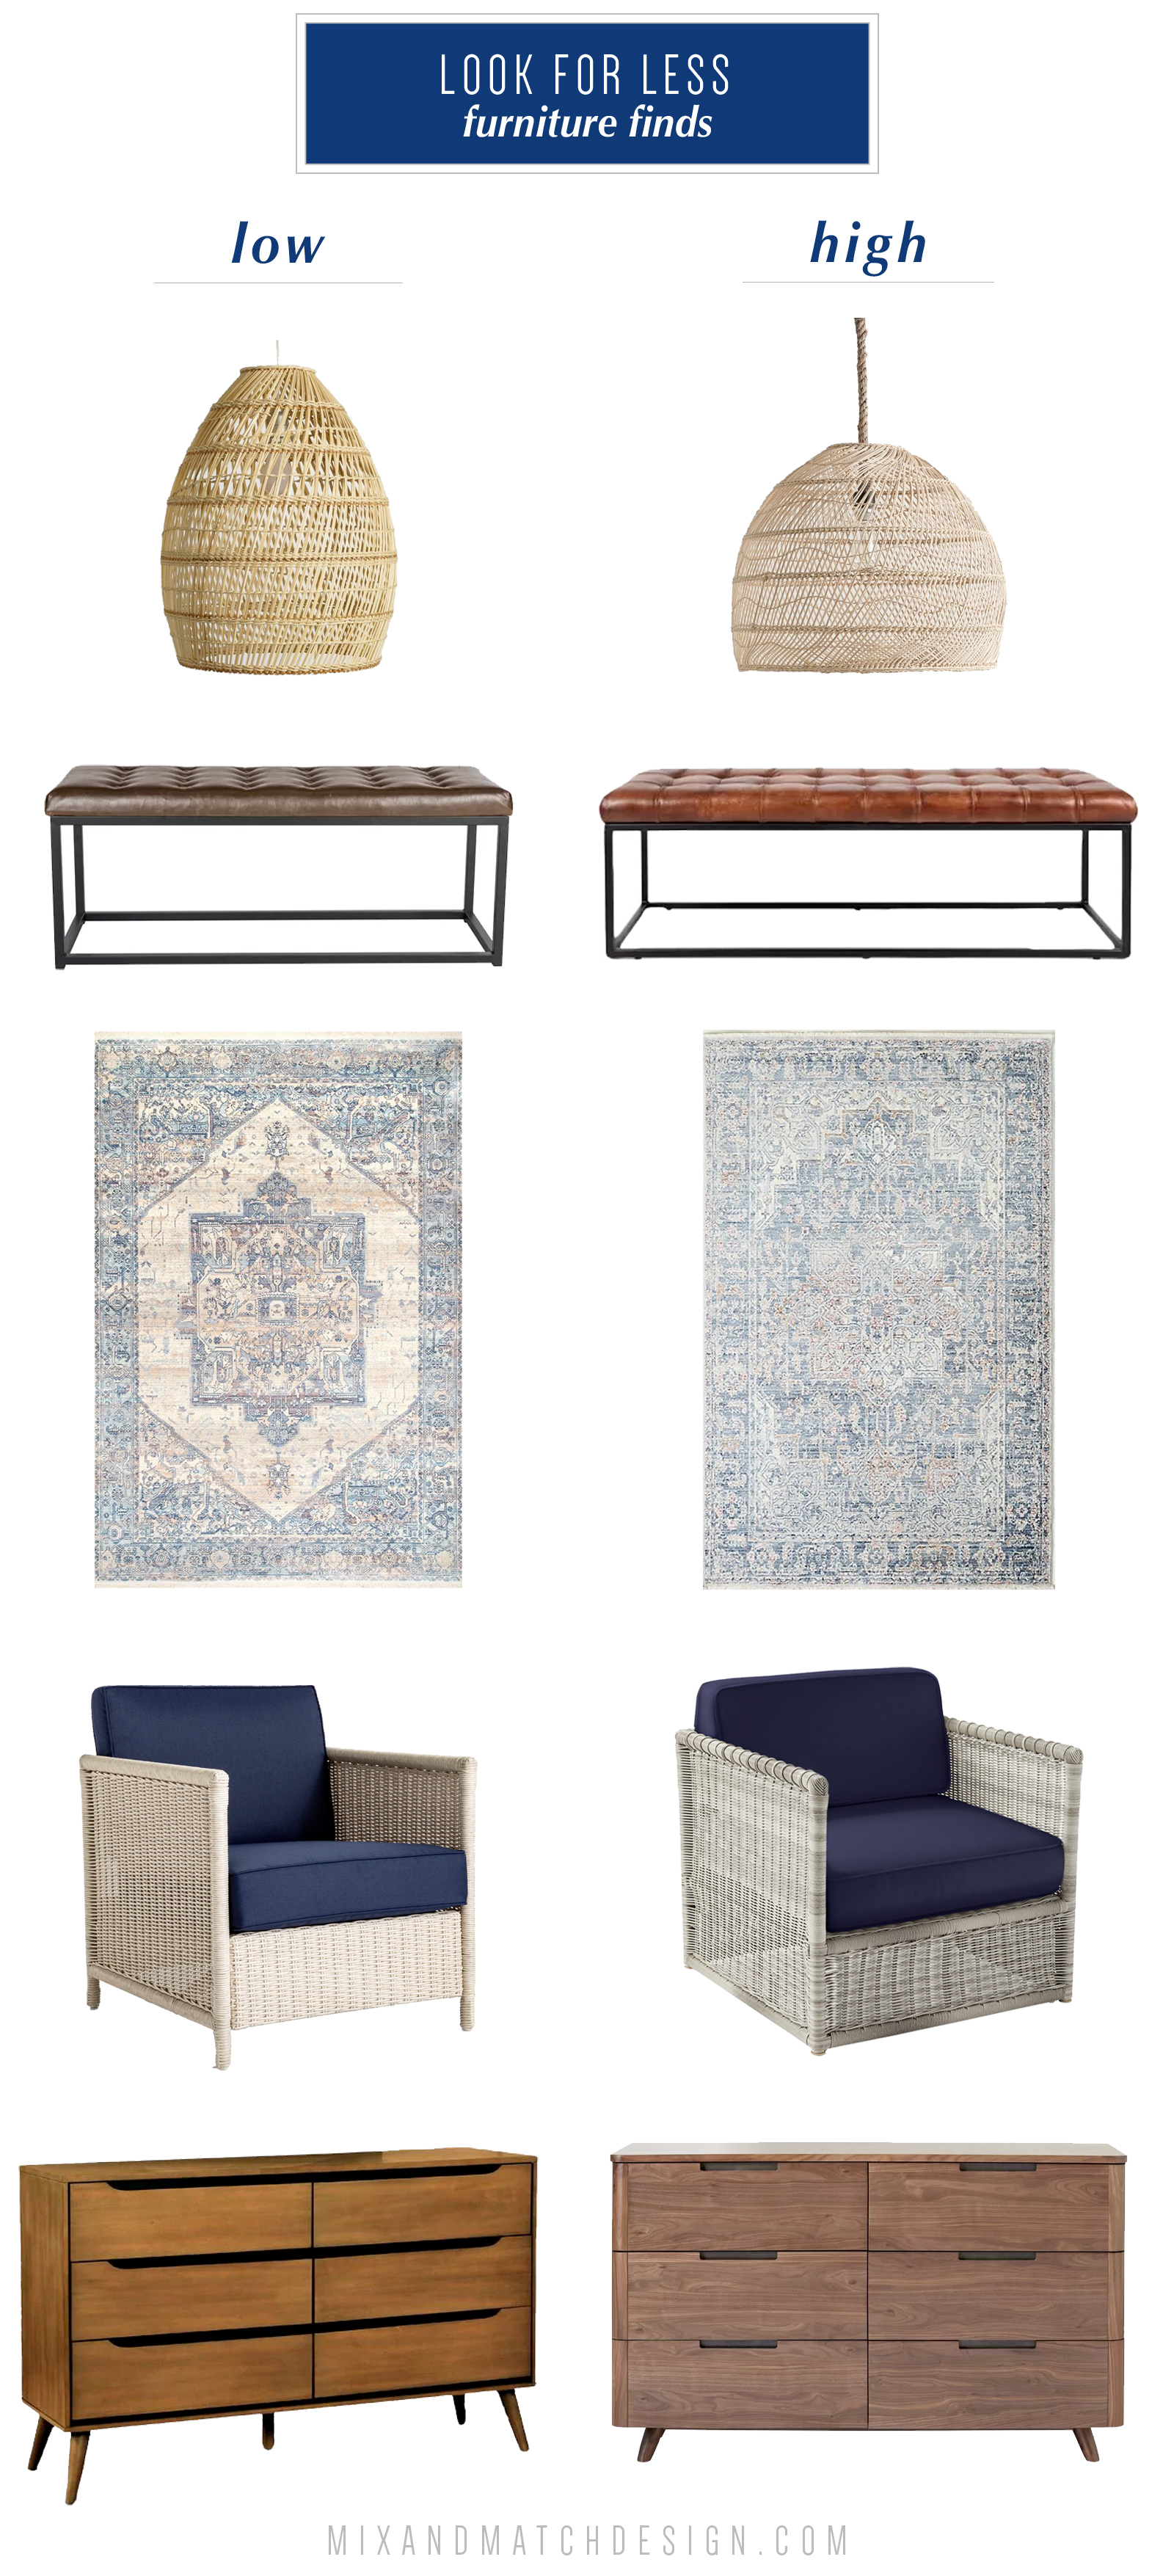 Get the look for less or decide to splurge! Come see the budget-friendly and spend-worthy pieces of furniture in this blog post including the high/low sources for a rattan pendant light, tufted leather bench, blue and ivory persian-style rug, light wicker patio lounge chair, and mid-century dresser!